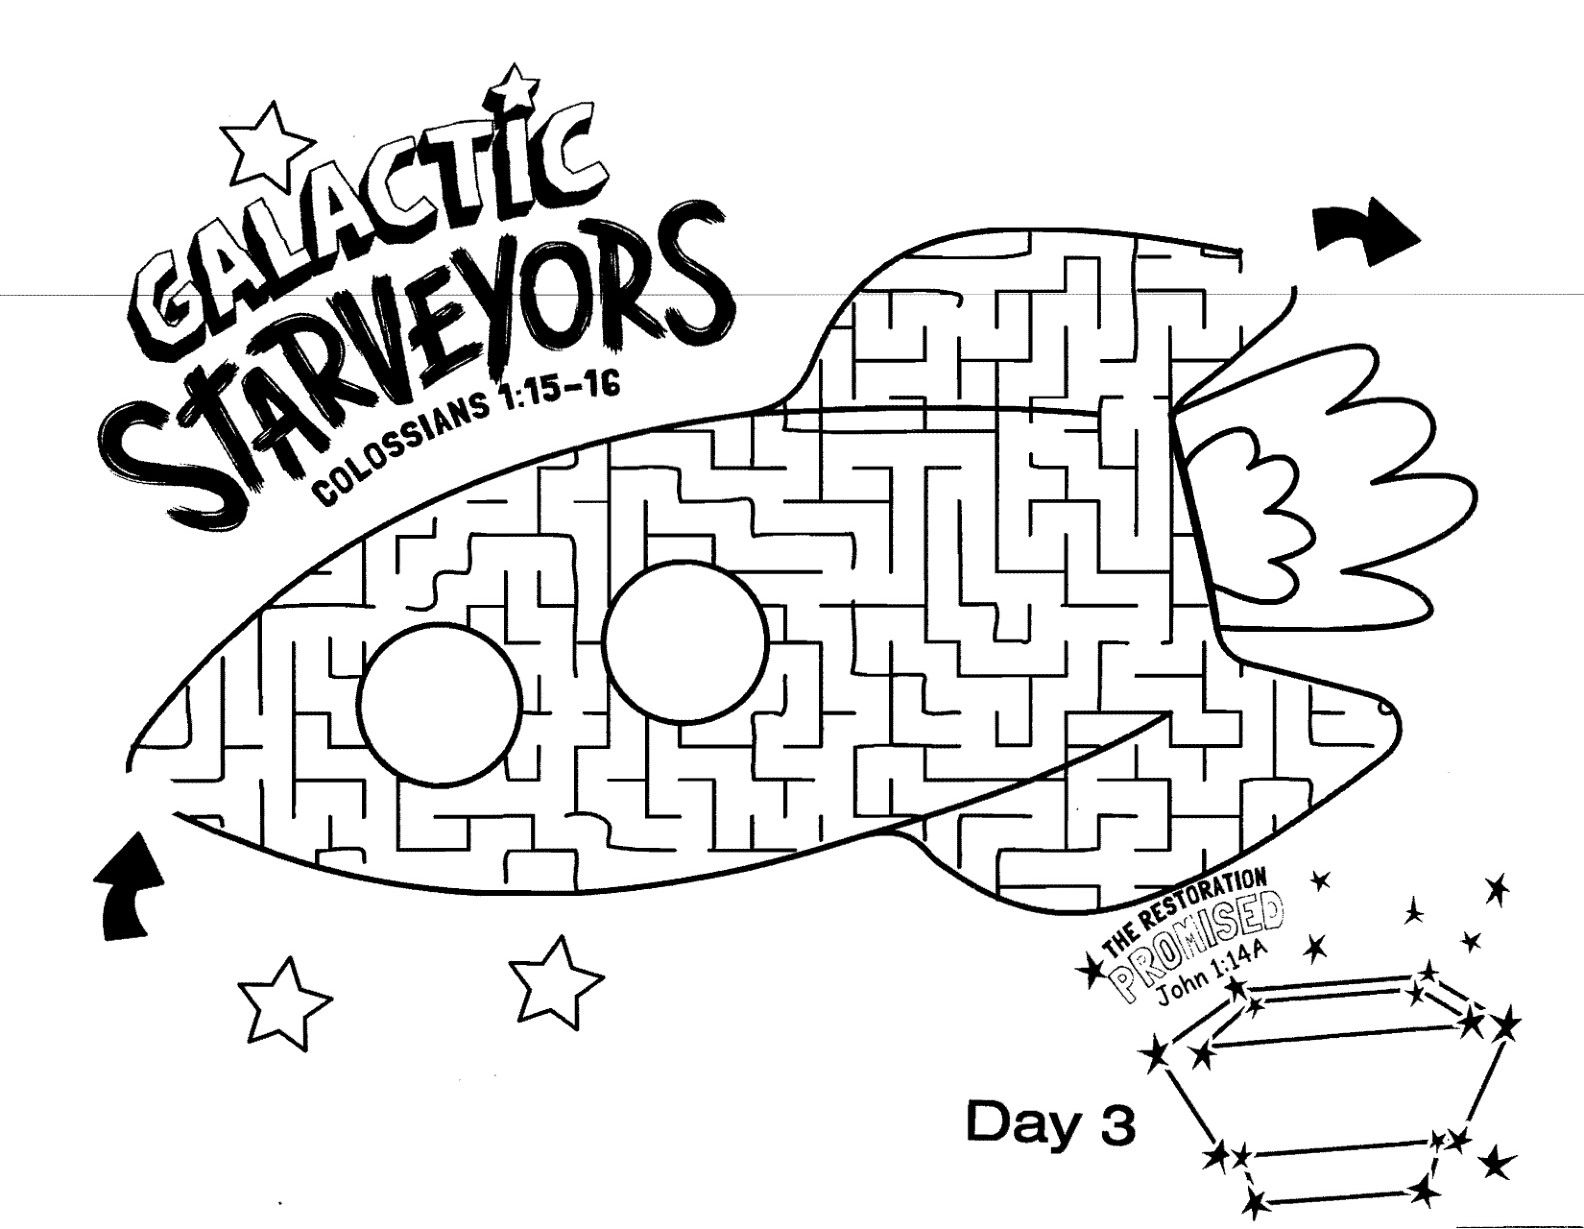 Galactic Starveyors Coloring Sheet VBS 2017- Day 3